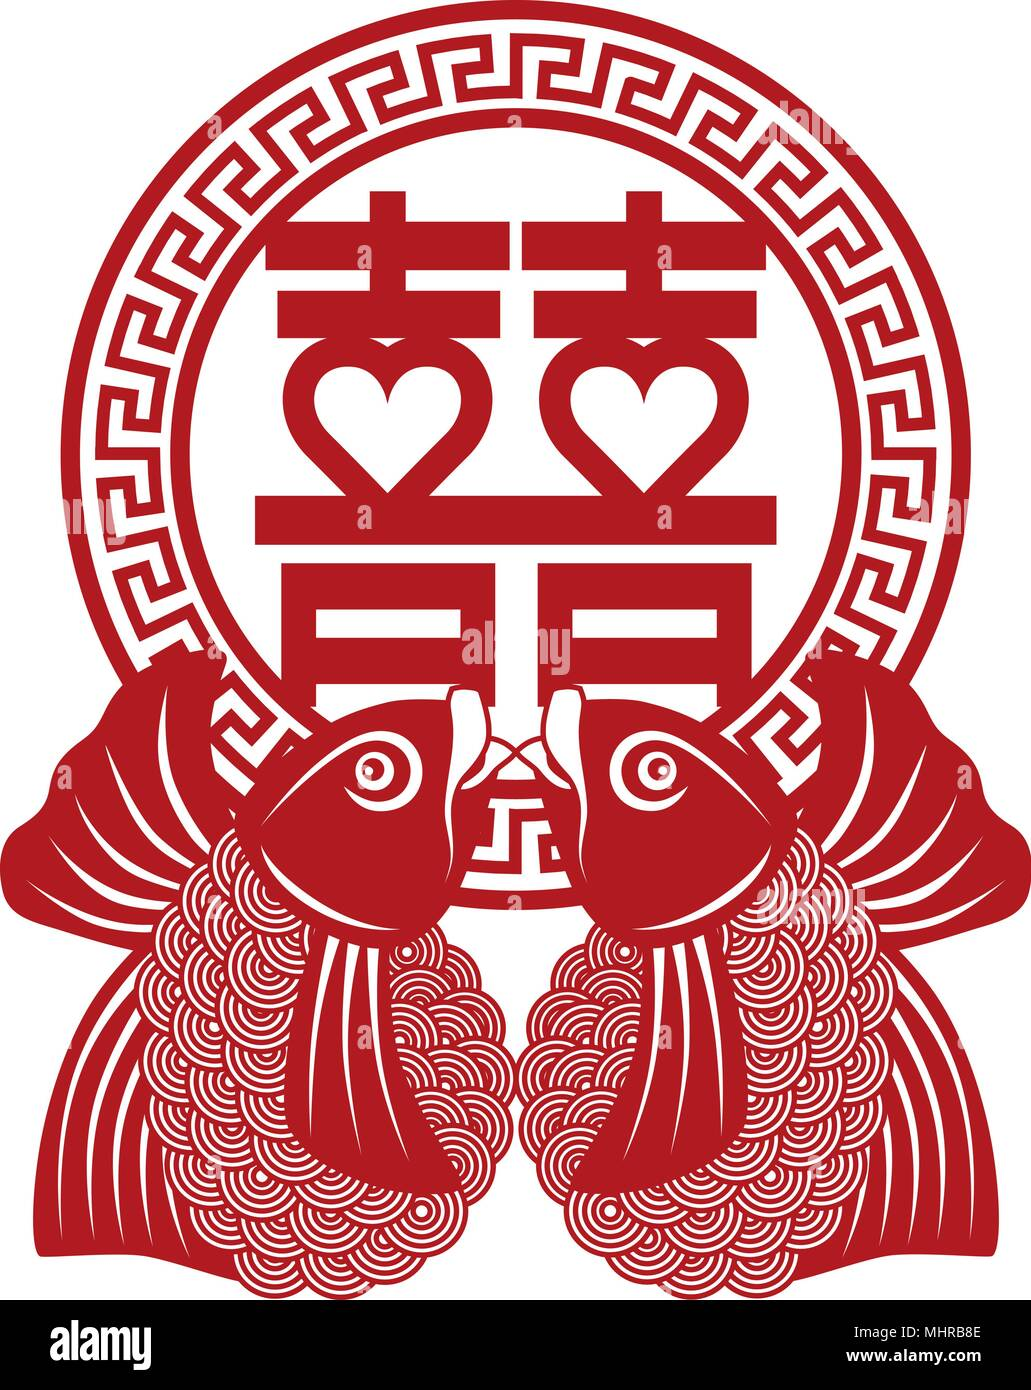 Double Happiness Koi Fish Chinese Wedding Symbol Text Red On White